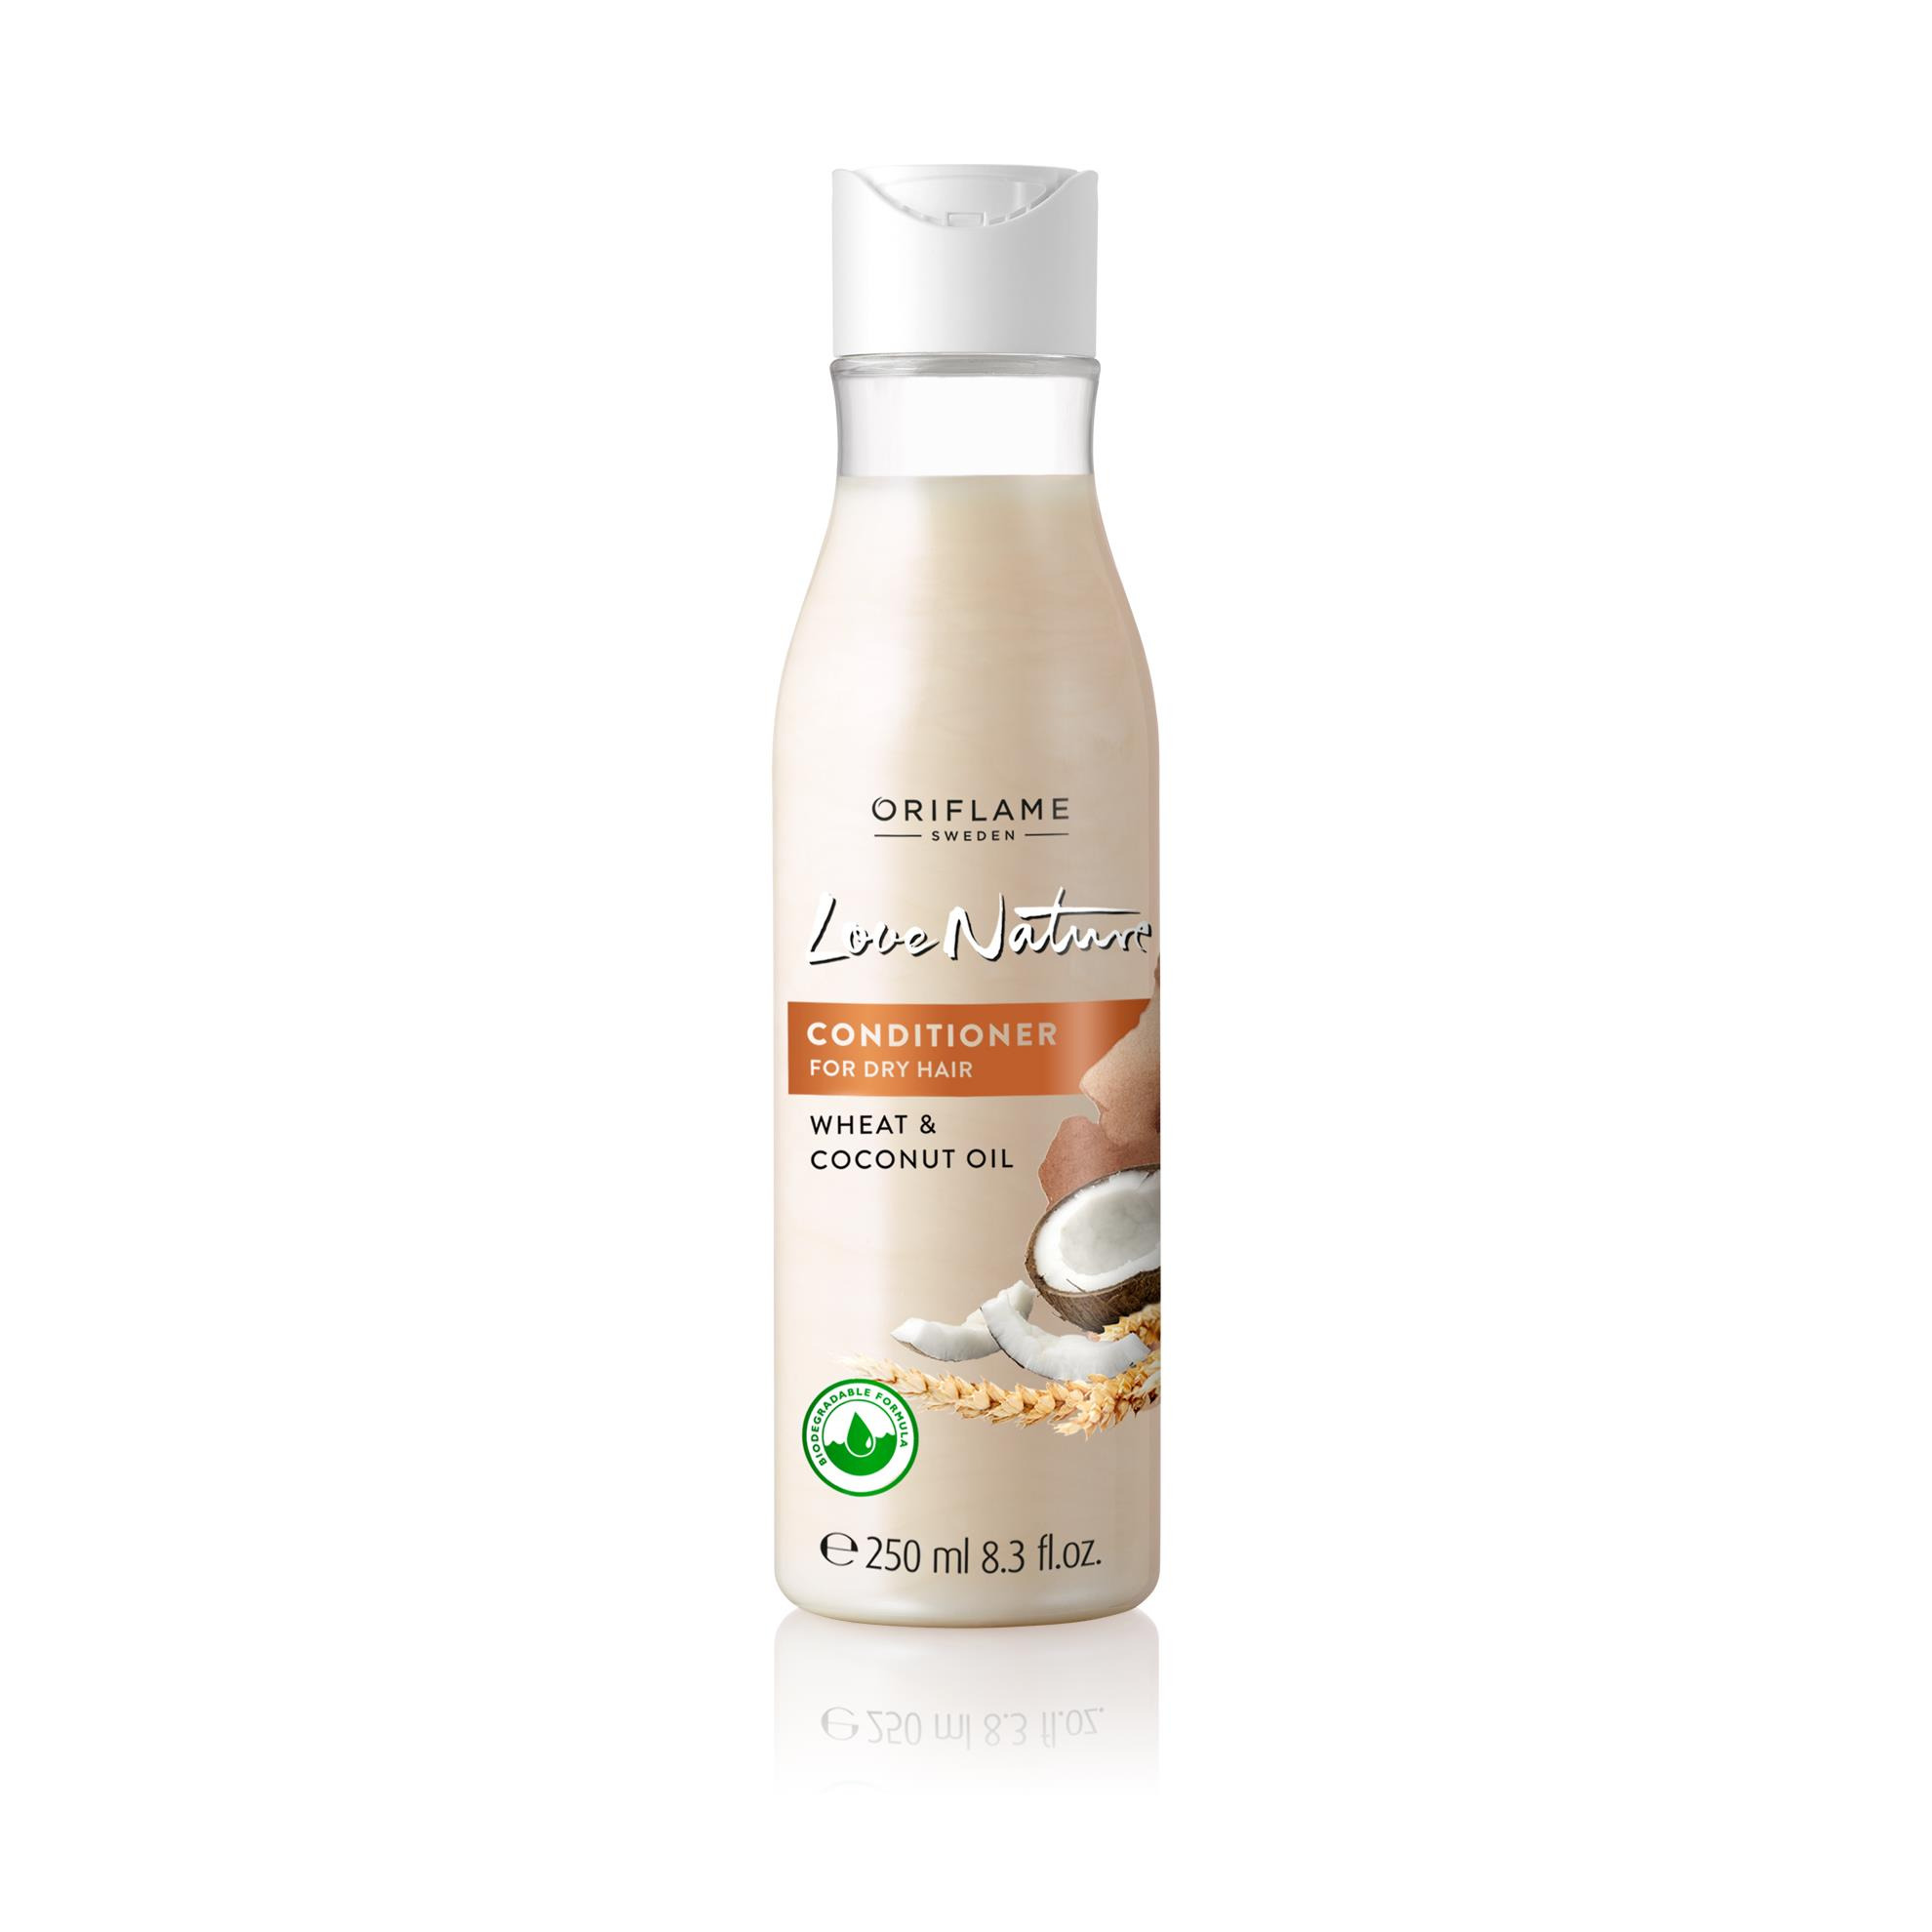 Oriflame Love Nature Conditioner for Dry Hair Wheat & Coconut Oil